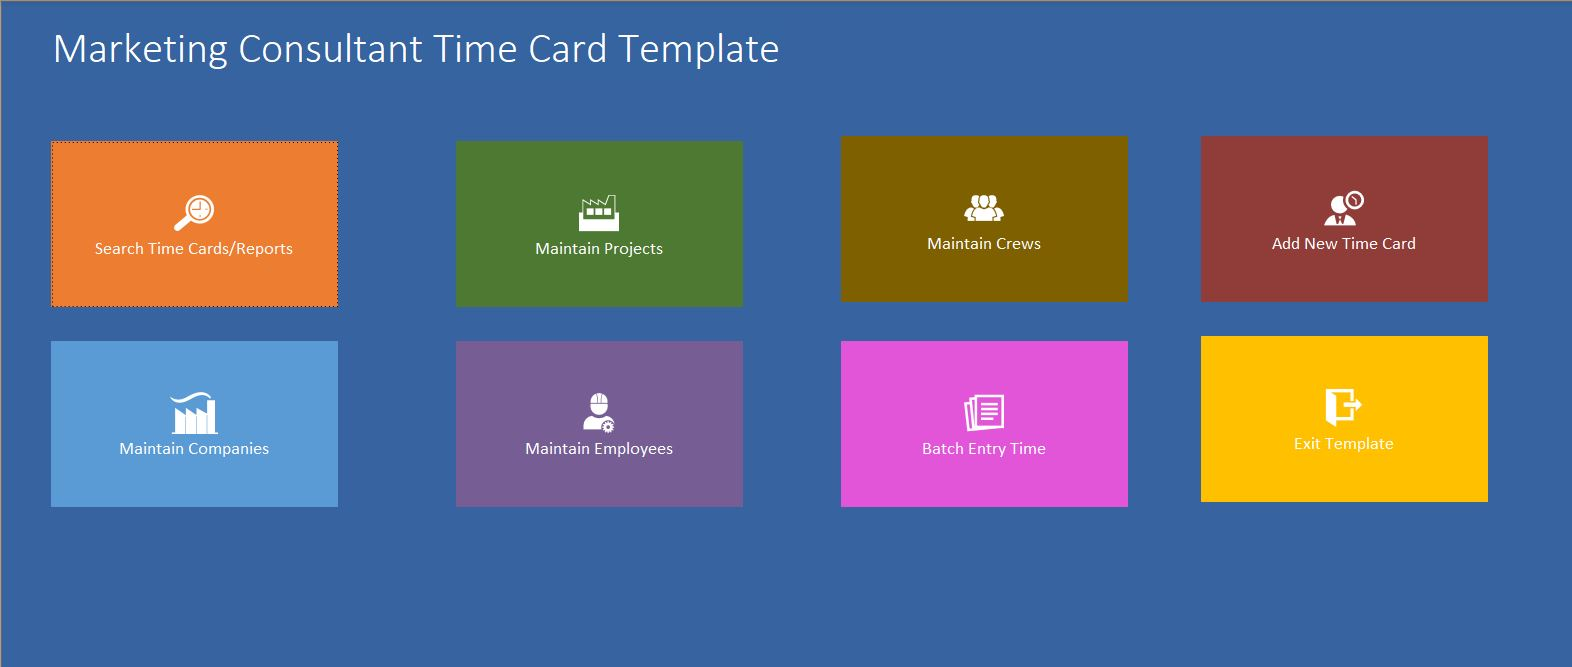 Marketing Consultant Time Card Template | Time Card Database